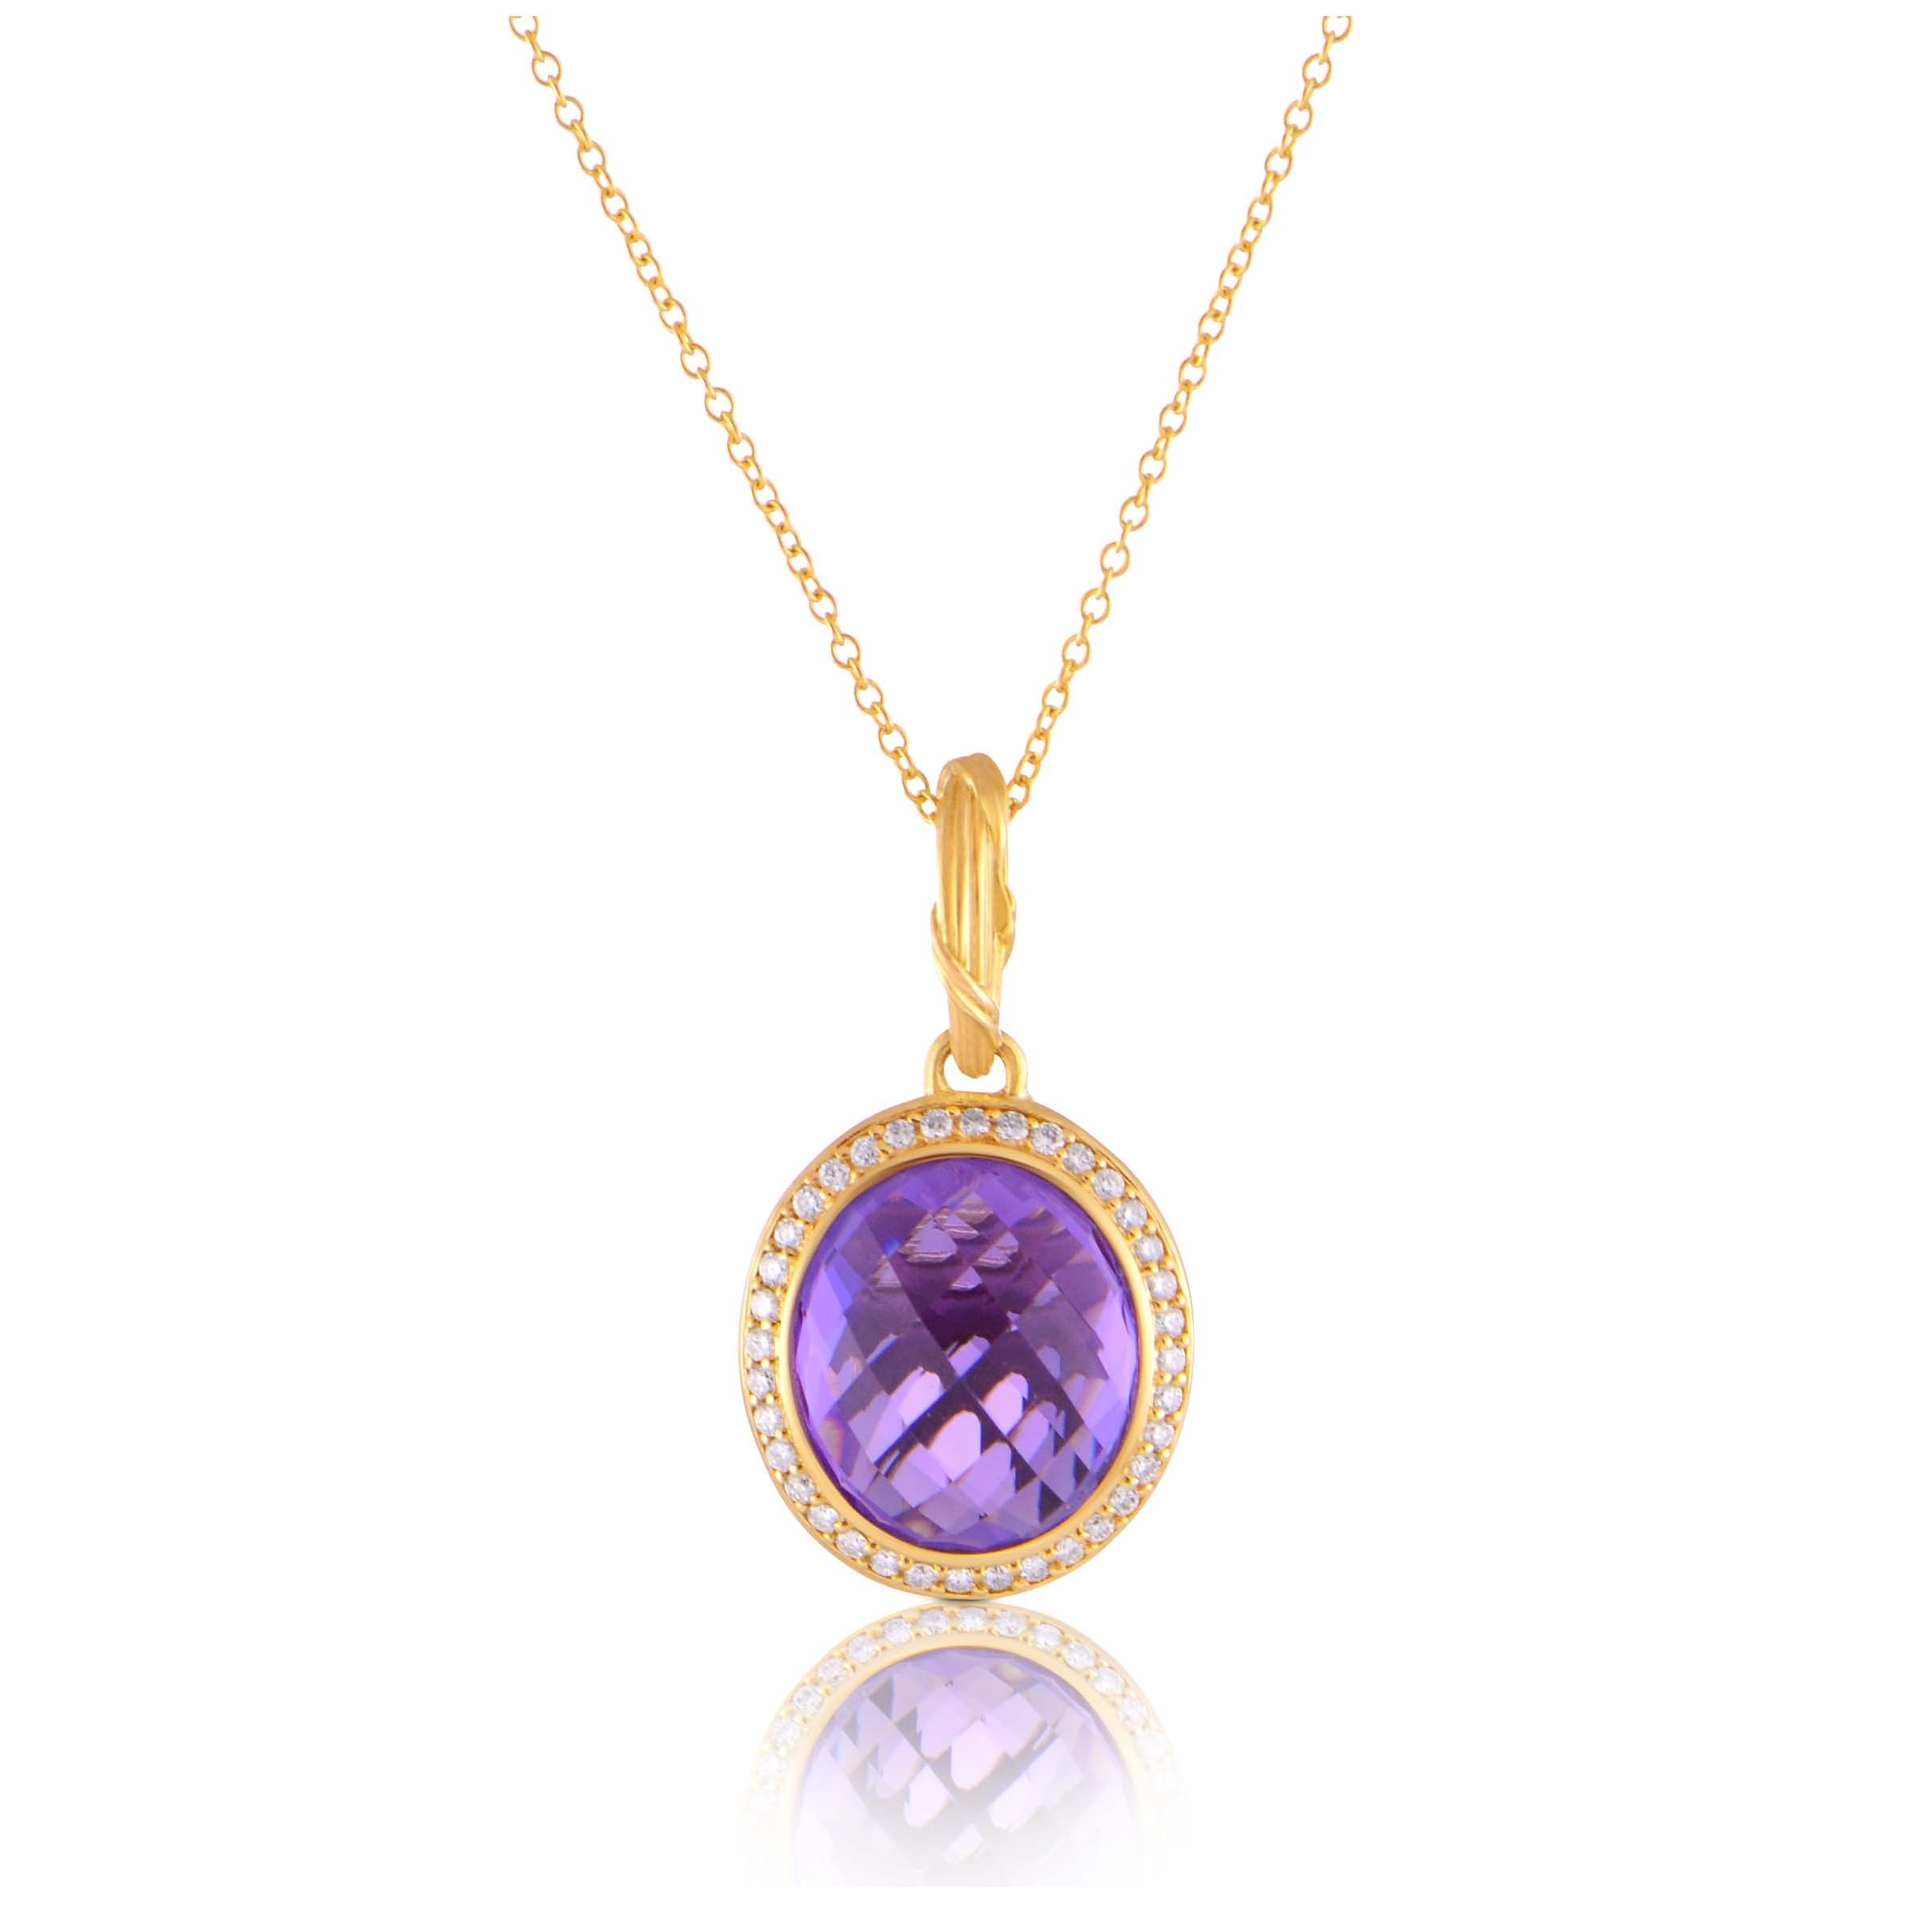 31d04d44baa8 RIBBON   REED FANTASIES AMETHYST HALO PENDANT NECKLACE IN DIAMONDS AND 18K  GOLD Peter Thomas Roth s iconic Ribbon   Reed motif sets the stage for  Fantasies